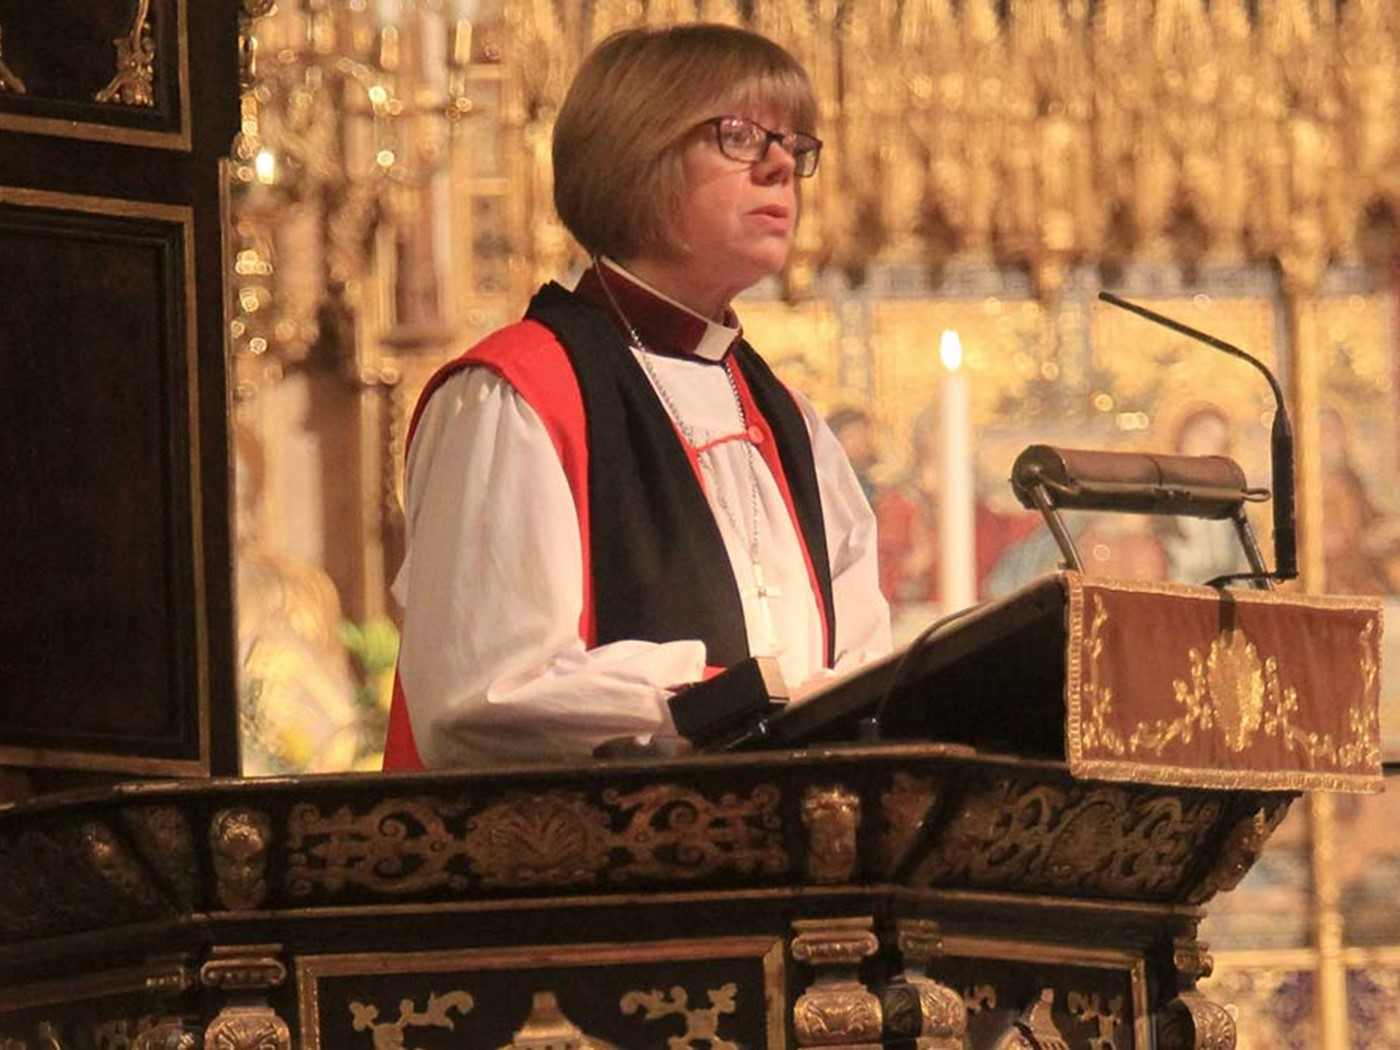 The Right Reverend and Right Honourable Dame Sarah Mullally DBE, Bishop of London, gives The Address